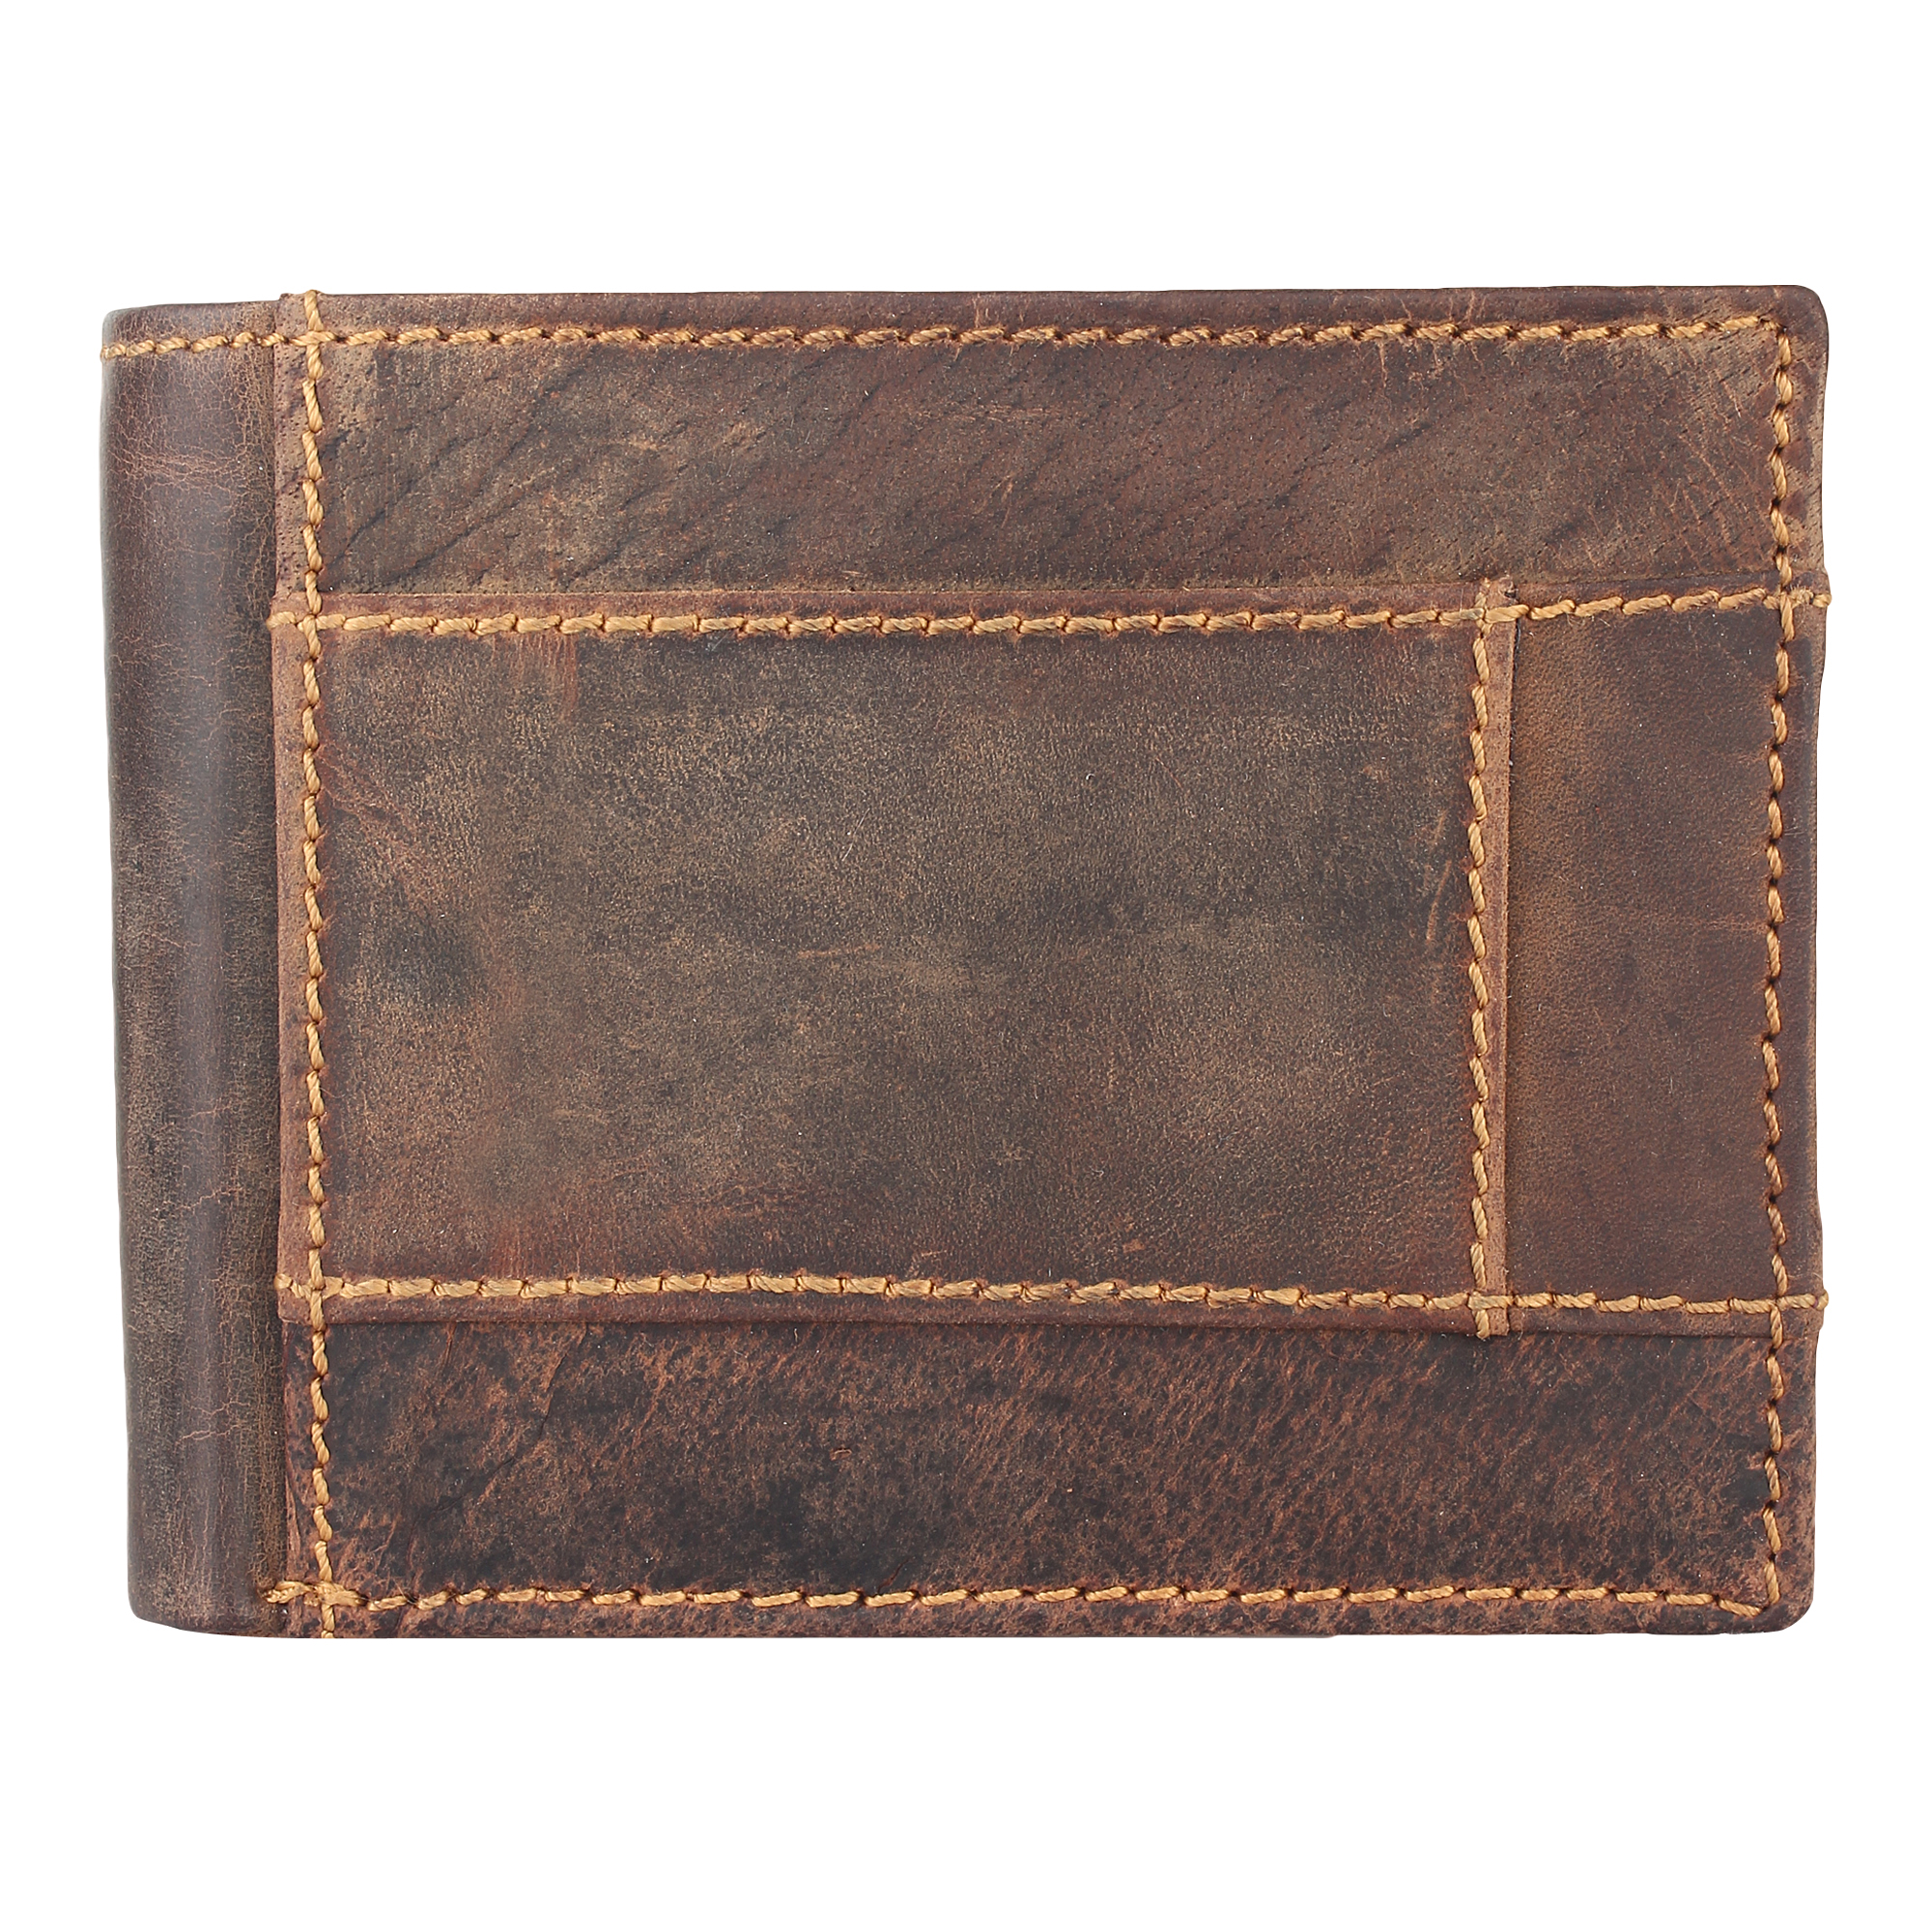 Leather Wallets Manufacturers in Florida, Leather Wallets Suppliers in Florida, Leather Wallets Wholesalers in Florida, Leather Wallets Traders in Florida